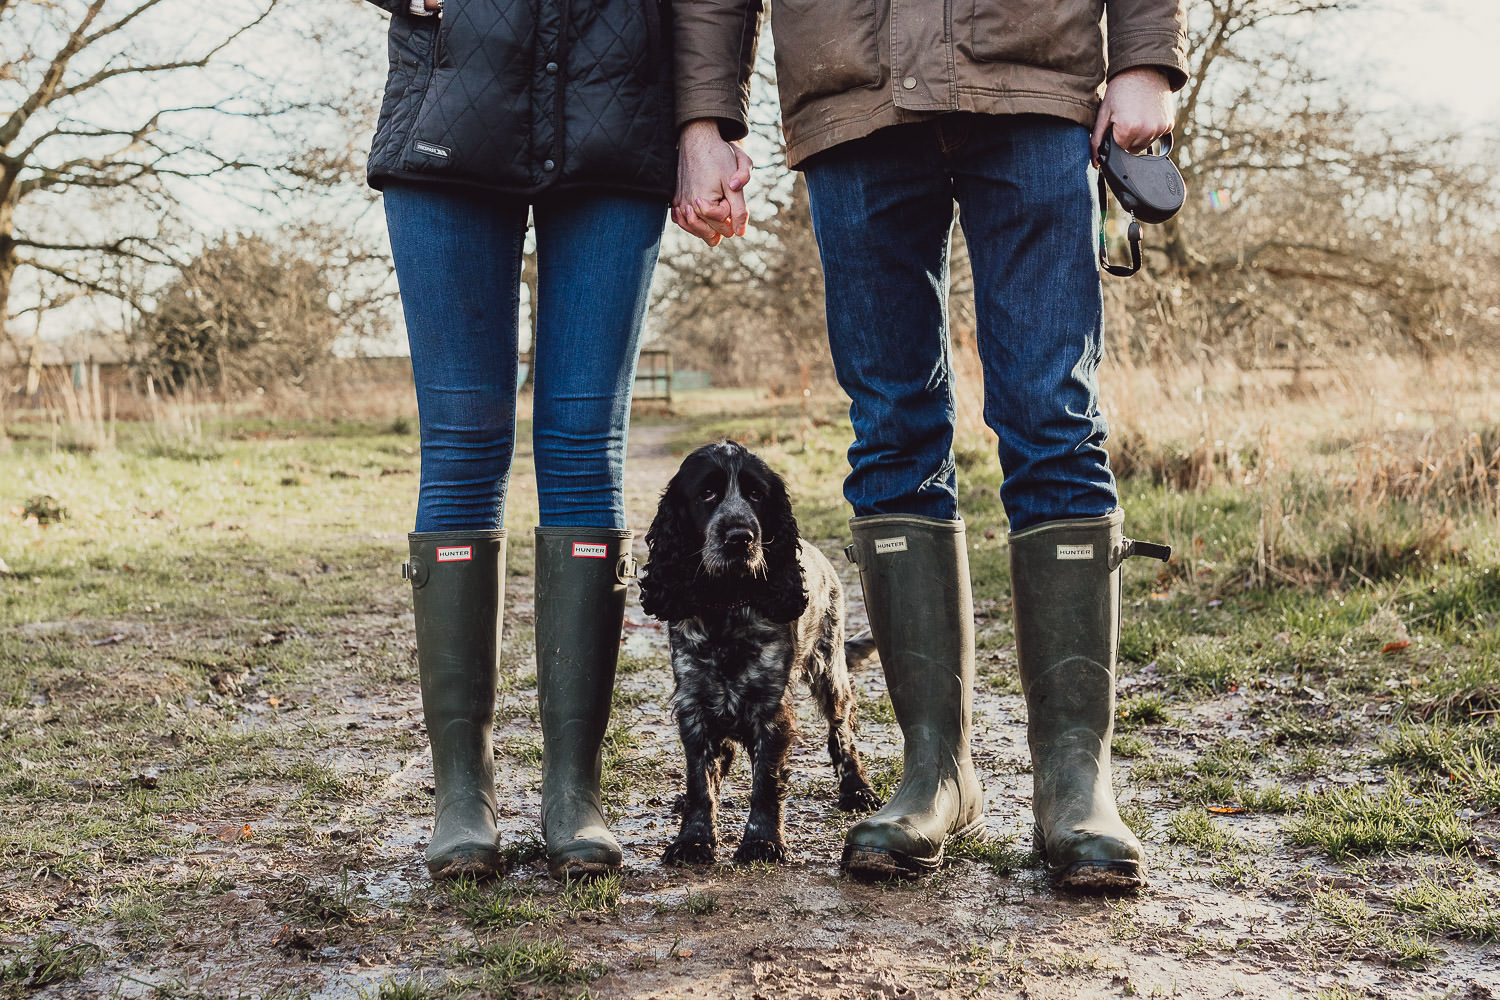 Norfolk woodland and Lake engagement shoot in wellies an with dog